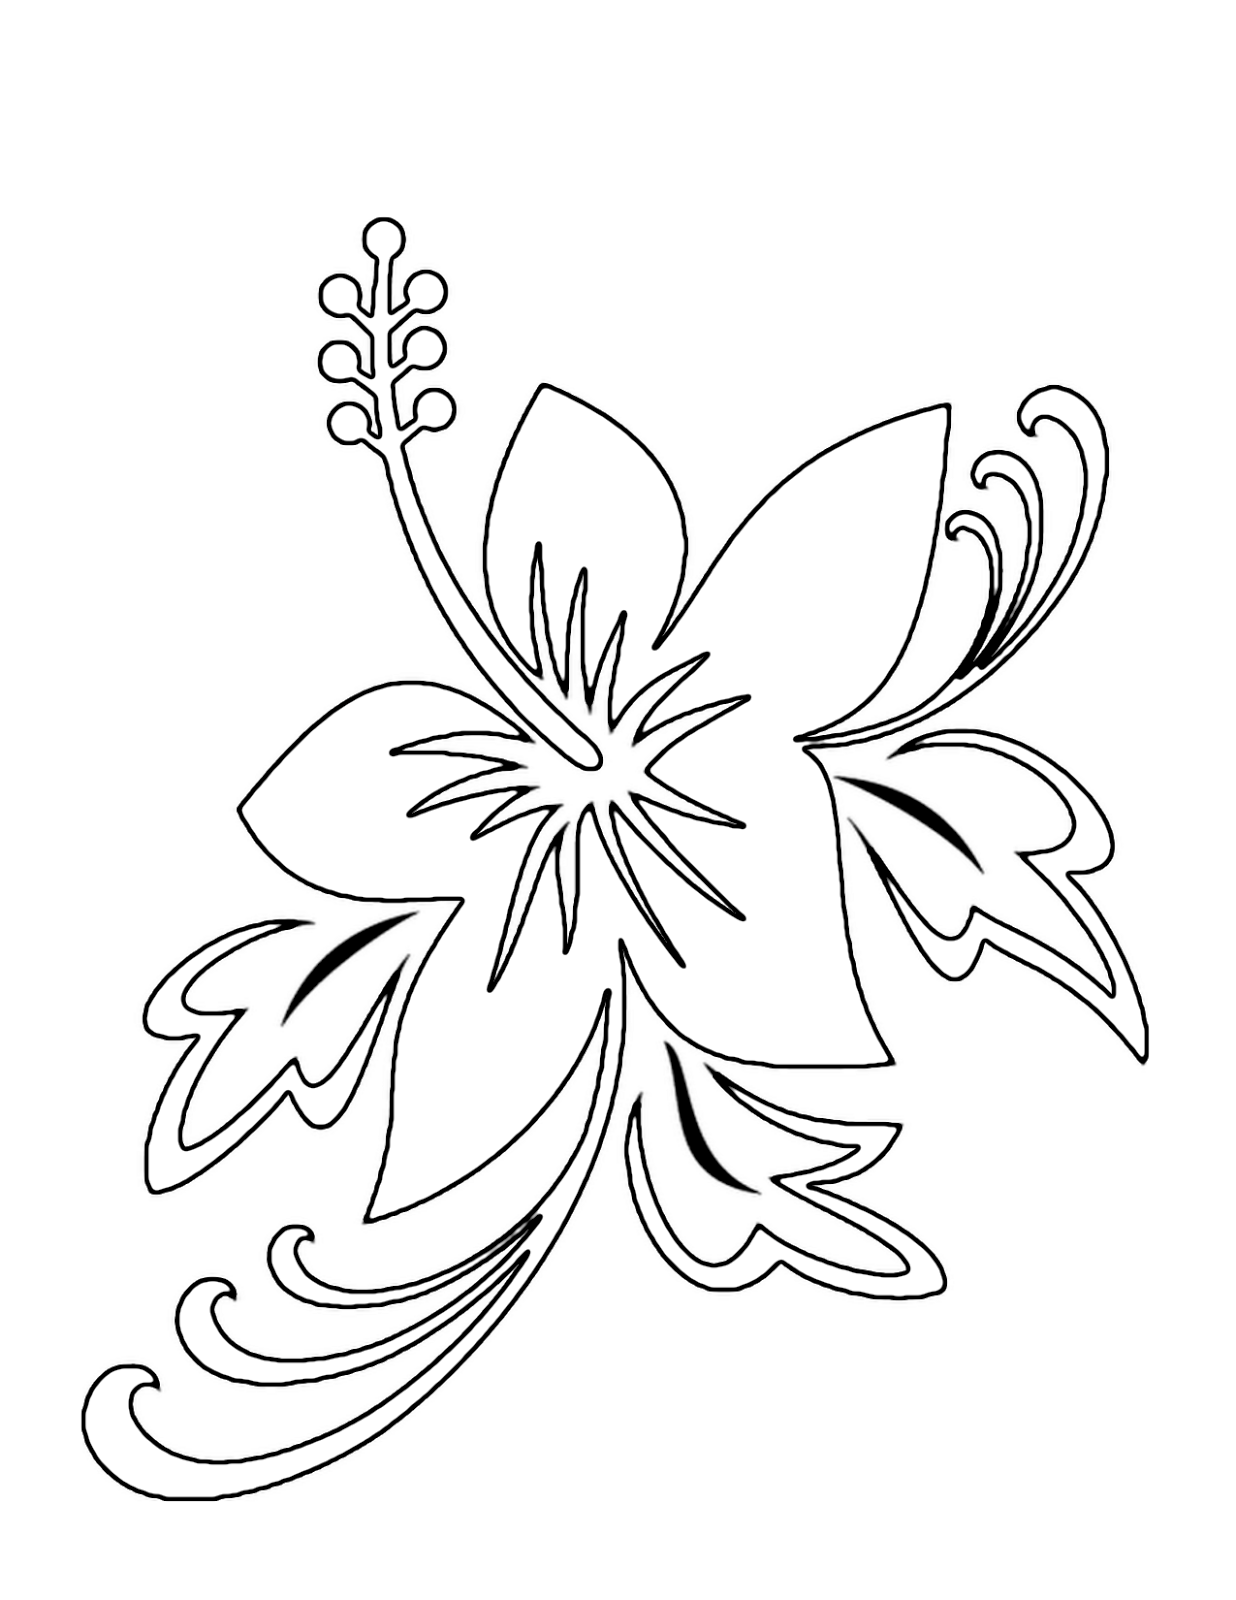 Hard Printable Coloring Pages For Adults AZ Coloring Pages - printable coloring pages for adults flowers